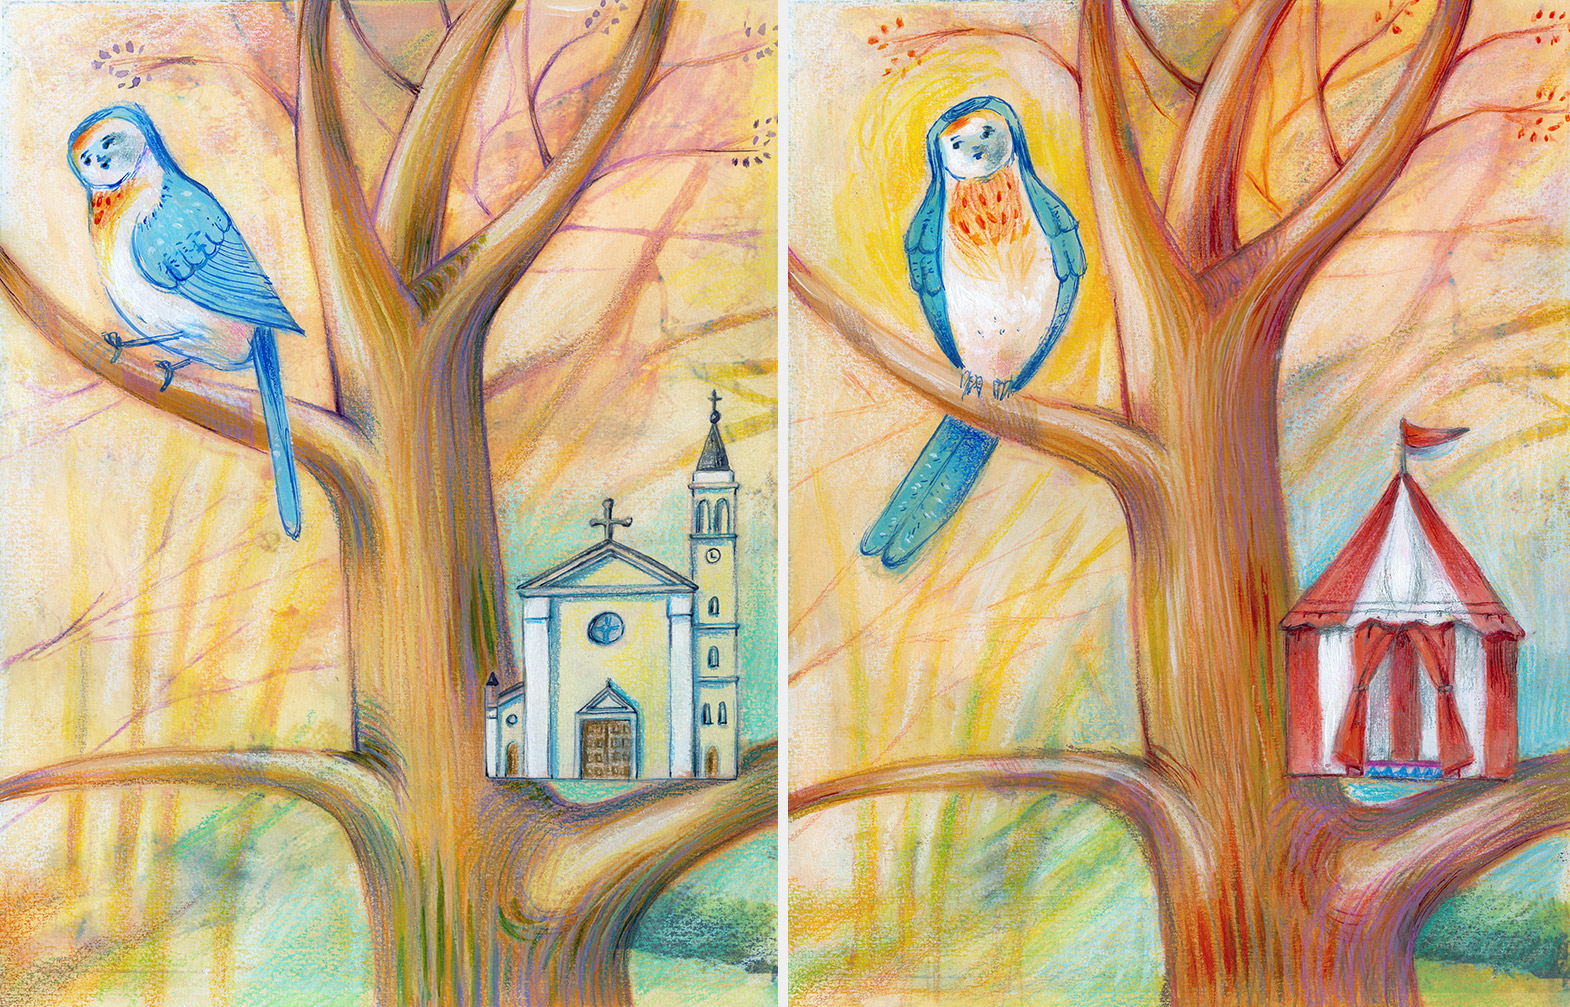 Two illustrations of a bird which has built the wrong houses, one is a circus tent and the other is a curch. He has to learn to build the nest